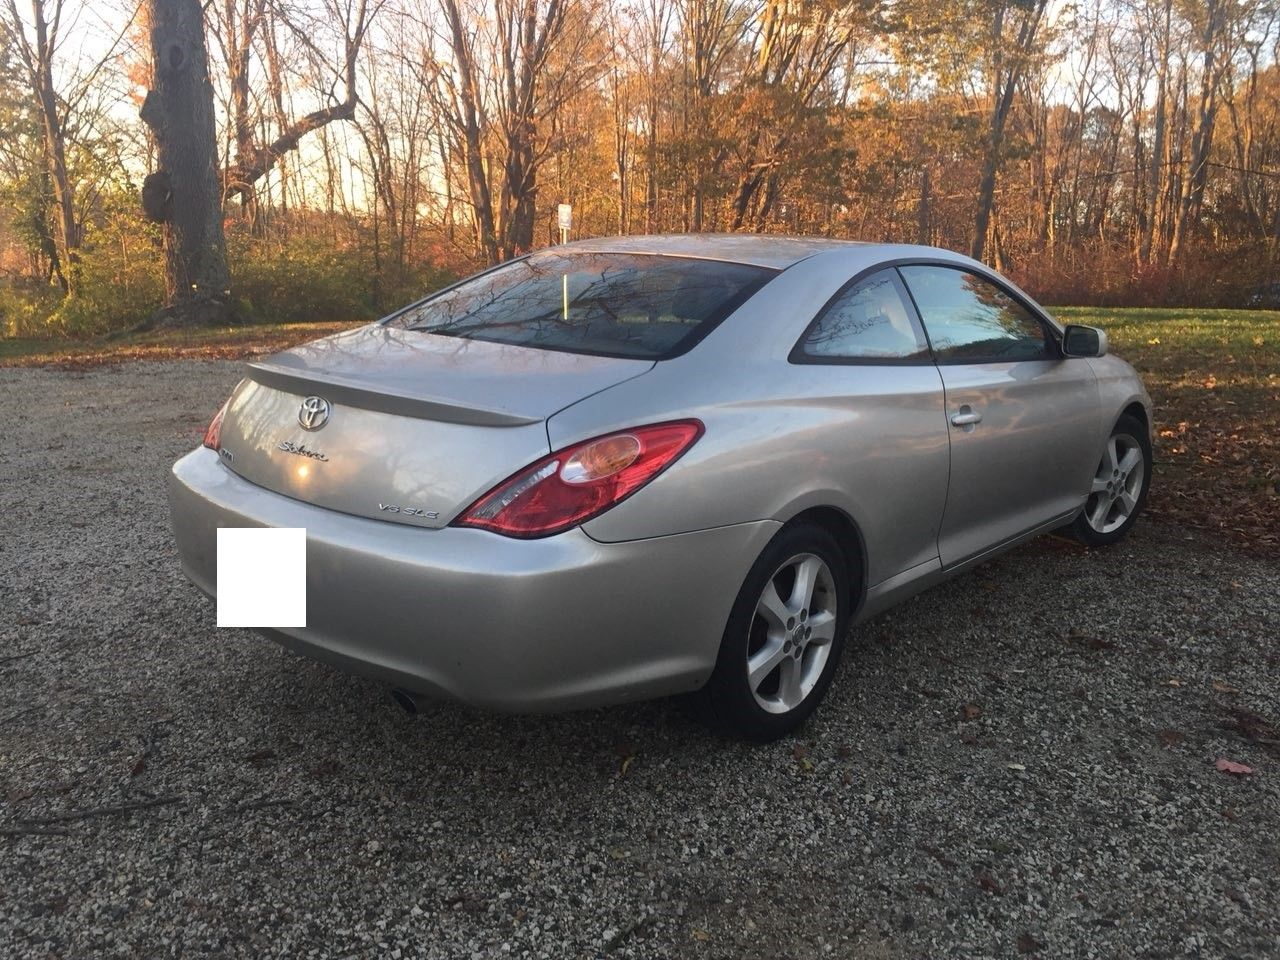 2004 Toyota Solara Interior Awesome Sle V6 Camry Used 33l 24v Automatic Coupe 2017 2018 Item Specifics